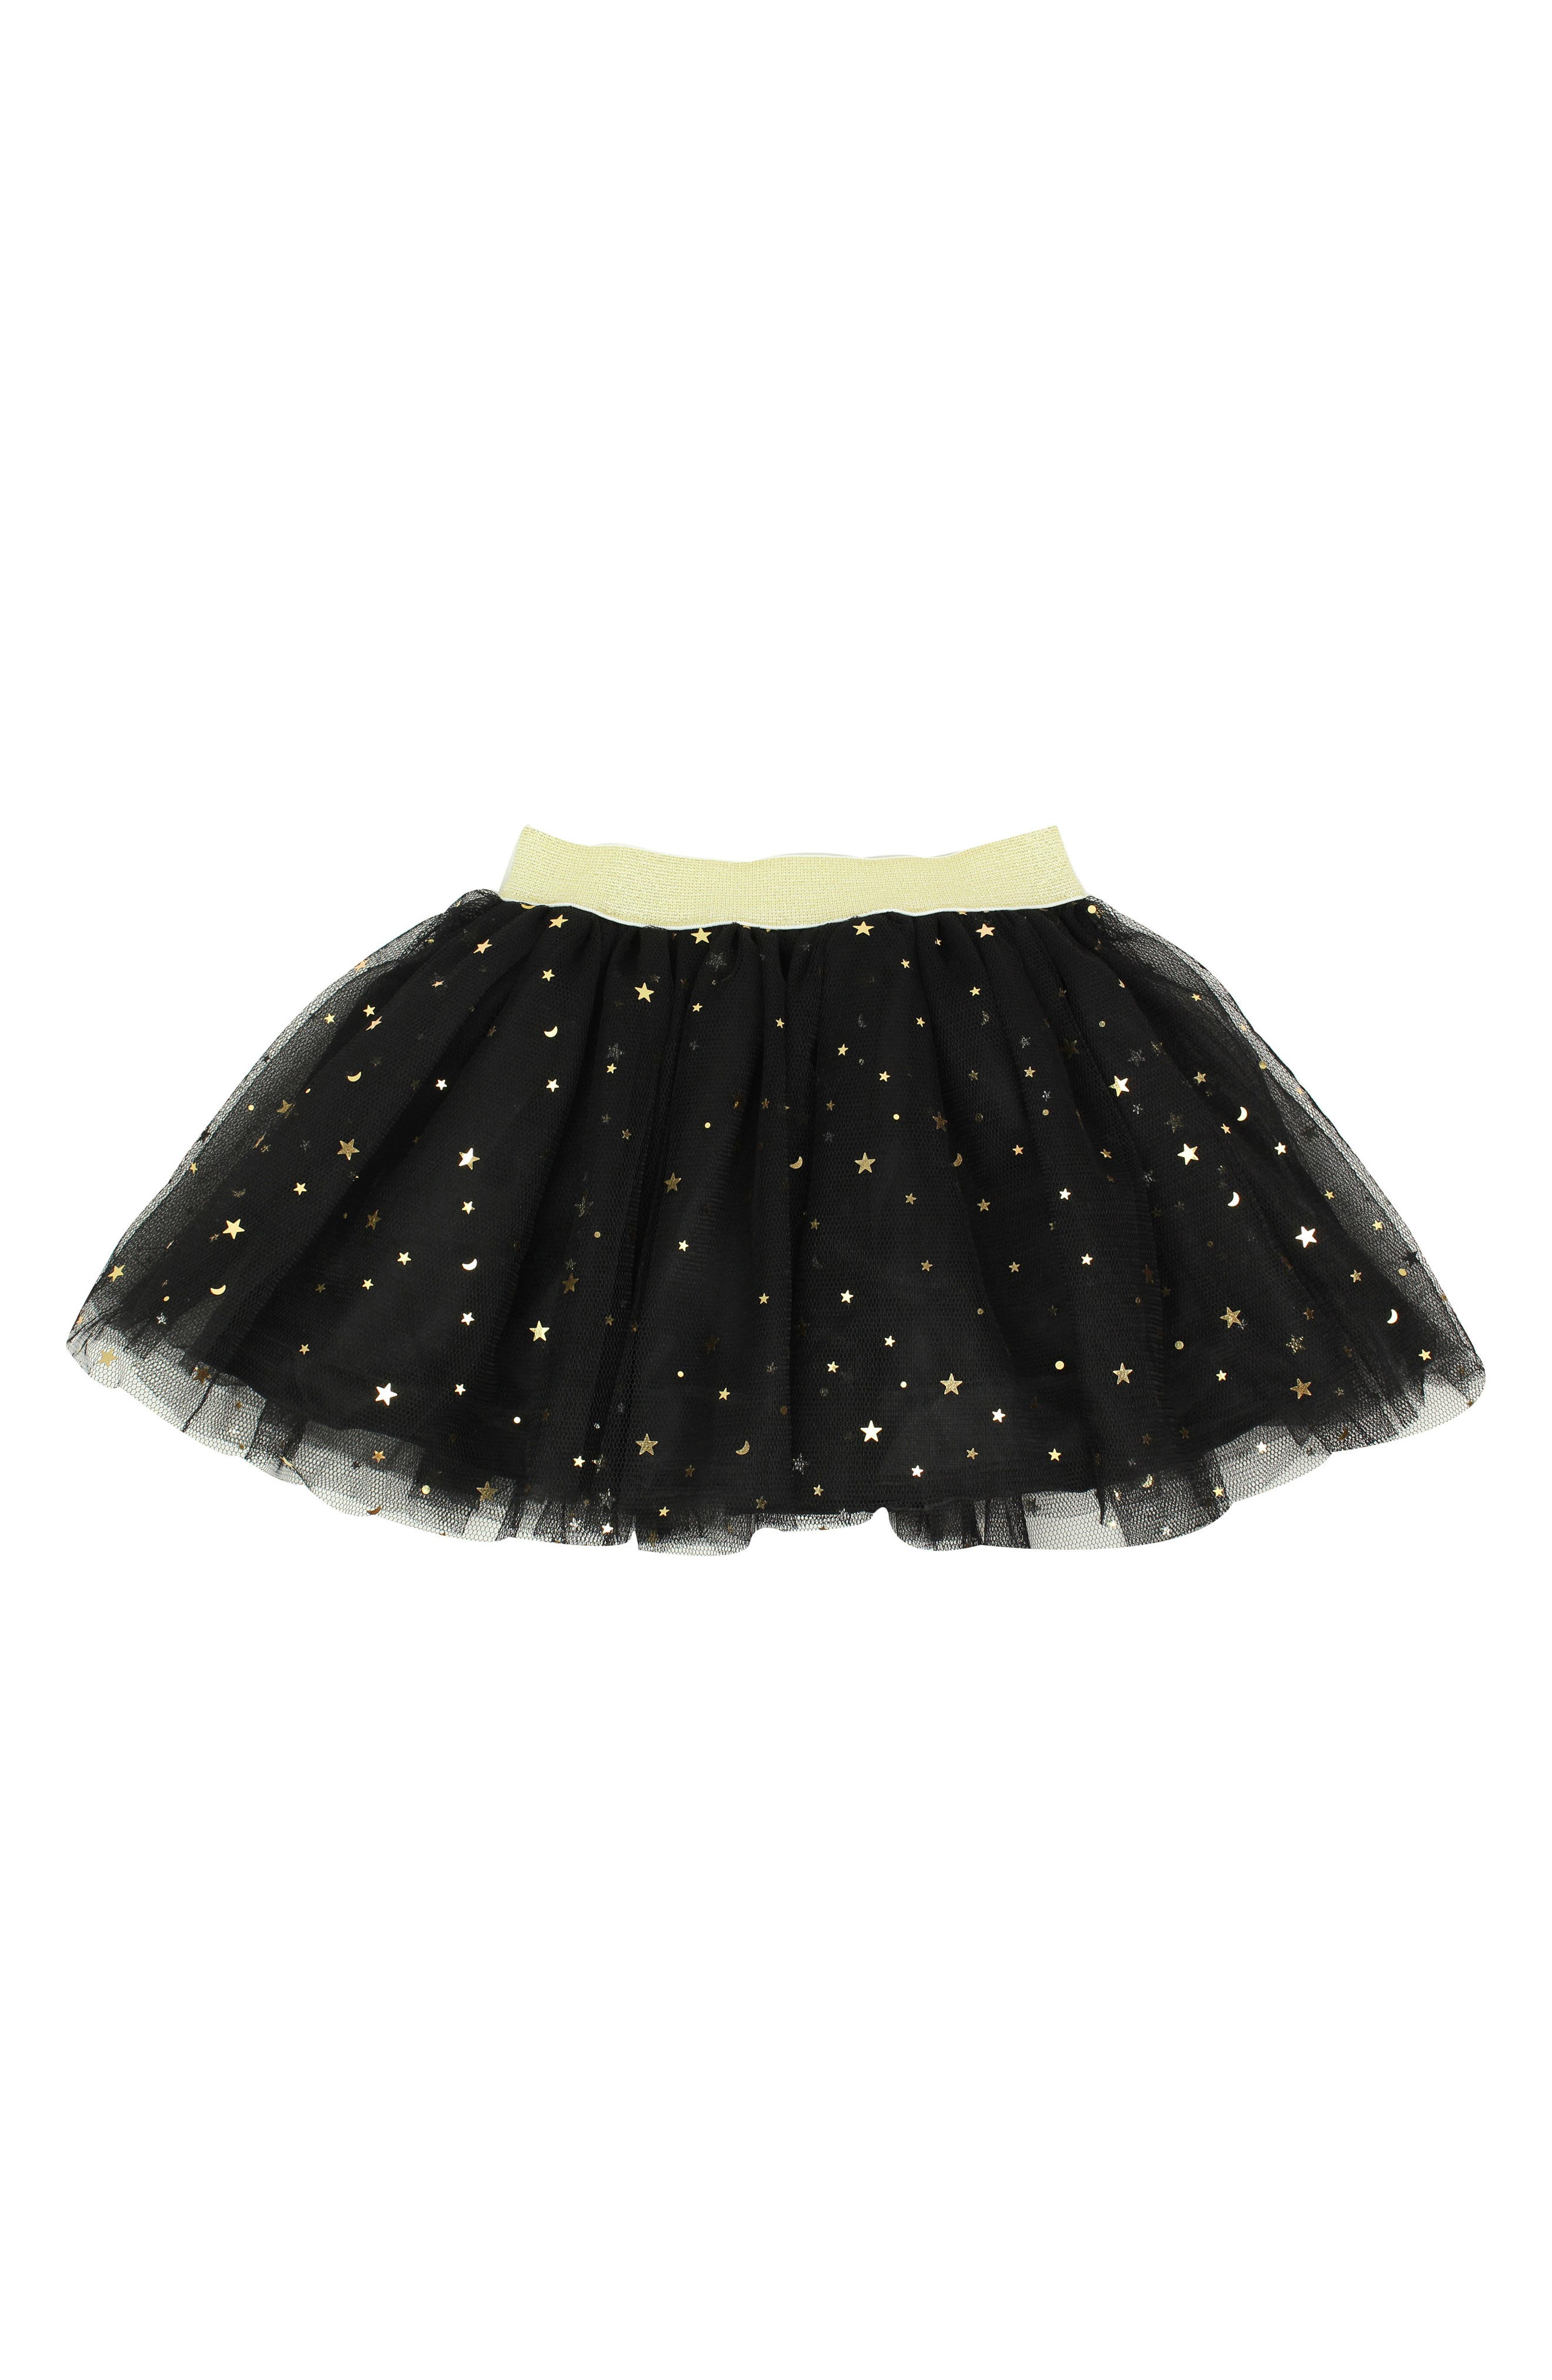 POPATU, Metallic Star Tulle Skirt, Main thumbnail 1, color, BLACK